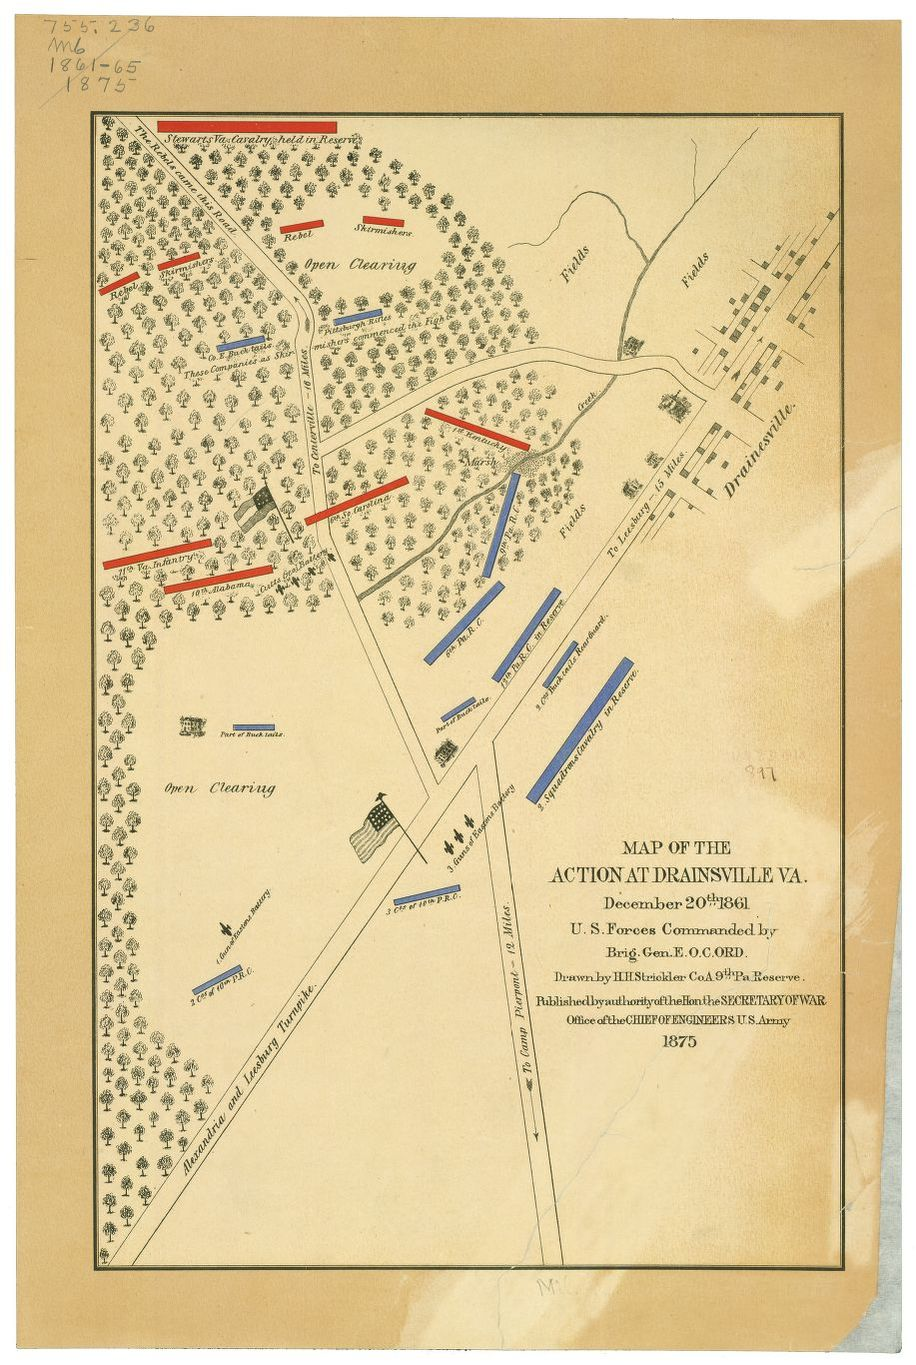 Map of the Battle of Dranesville by the US Army Corps of Engineers, 1875